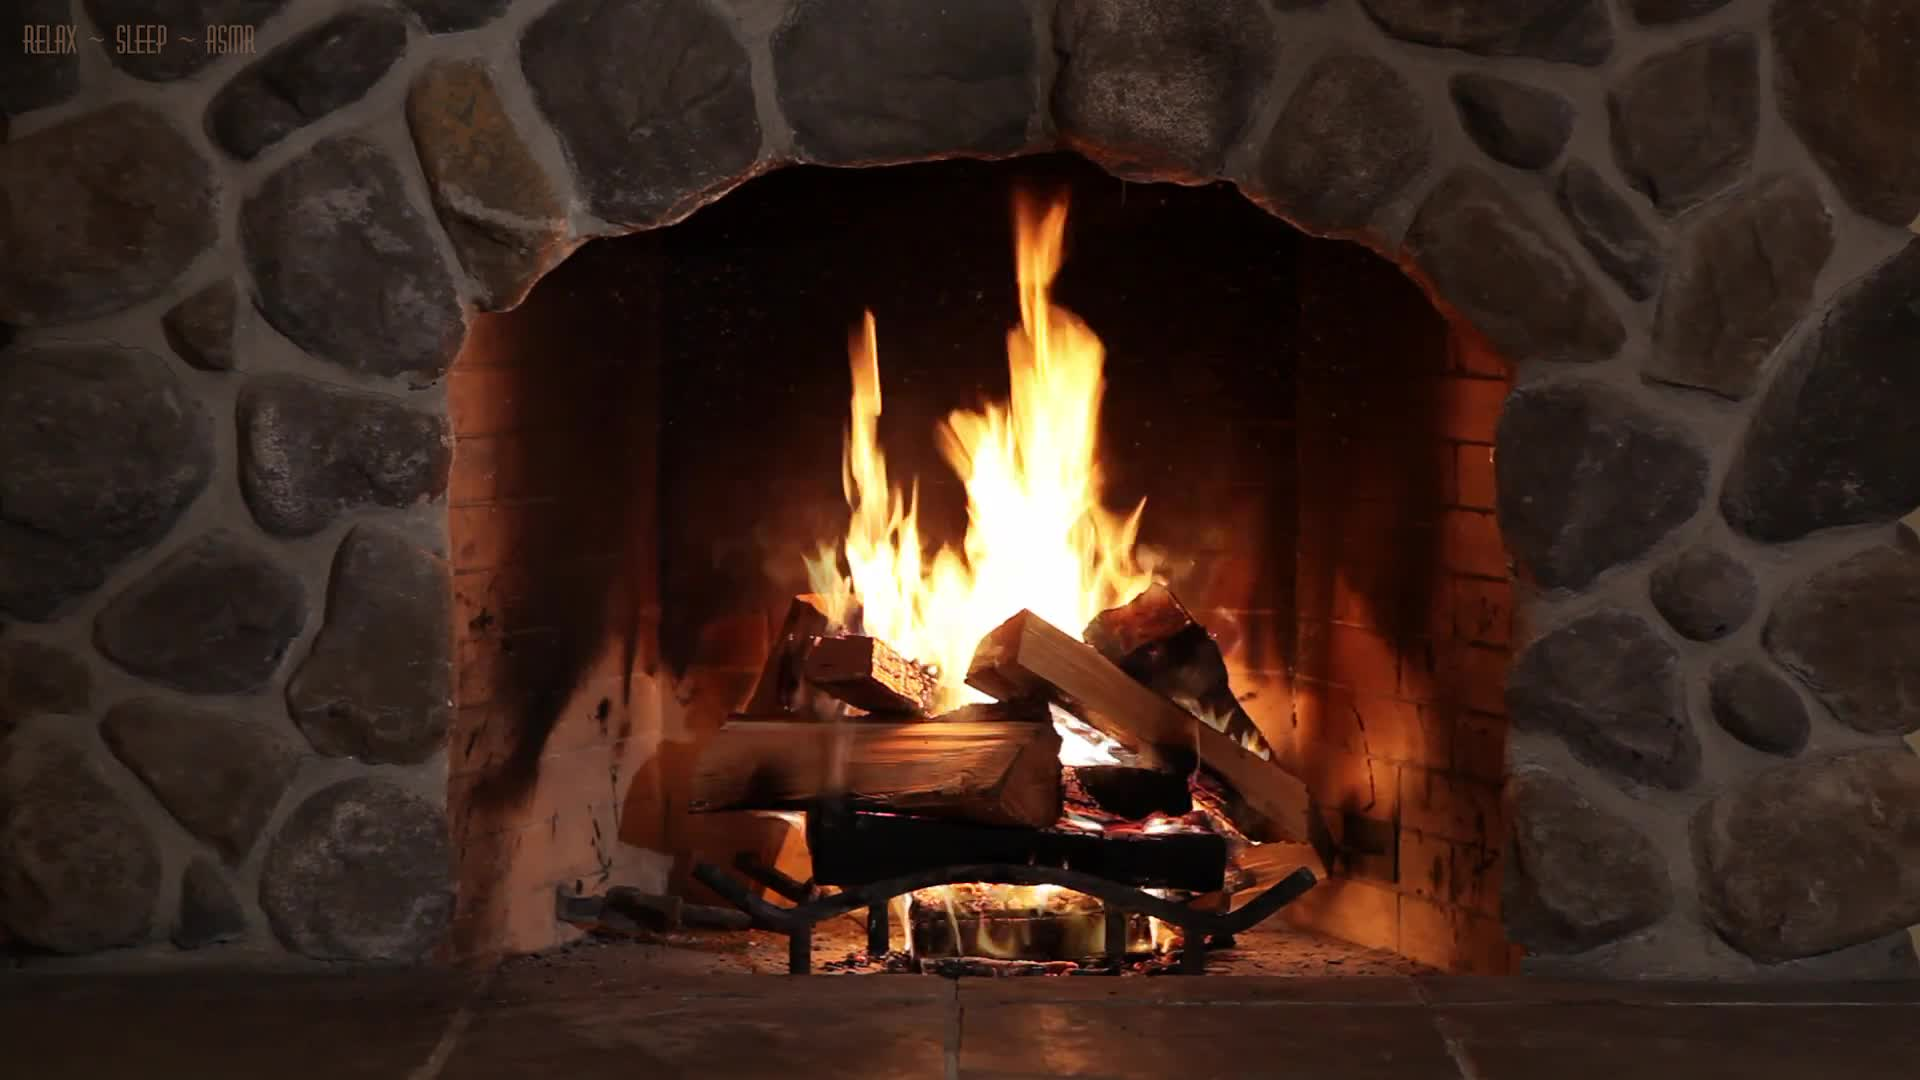 tv fireplace with relaxing crackling sounds of wood burning 10 rh gfycat com fireplace crackle sound box fireplace crackle sound box